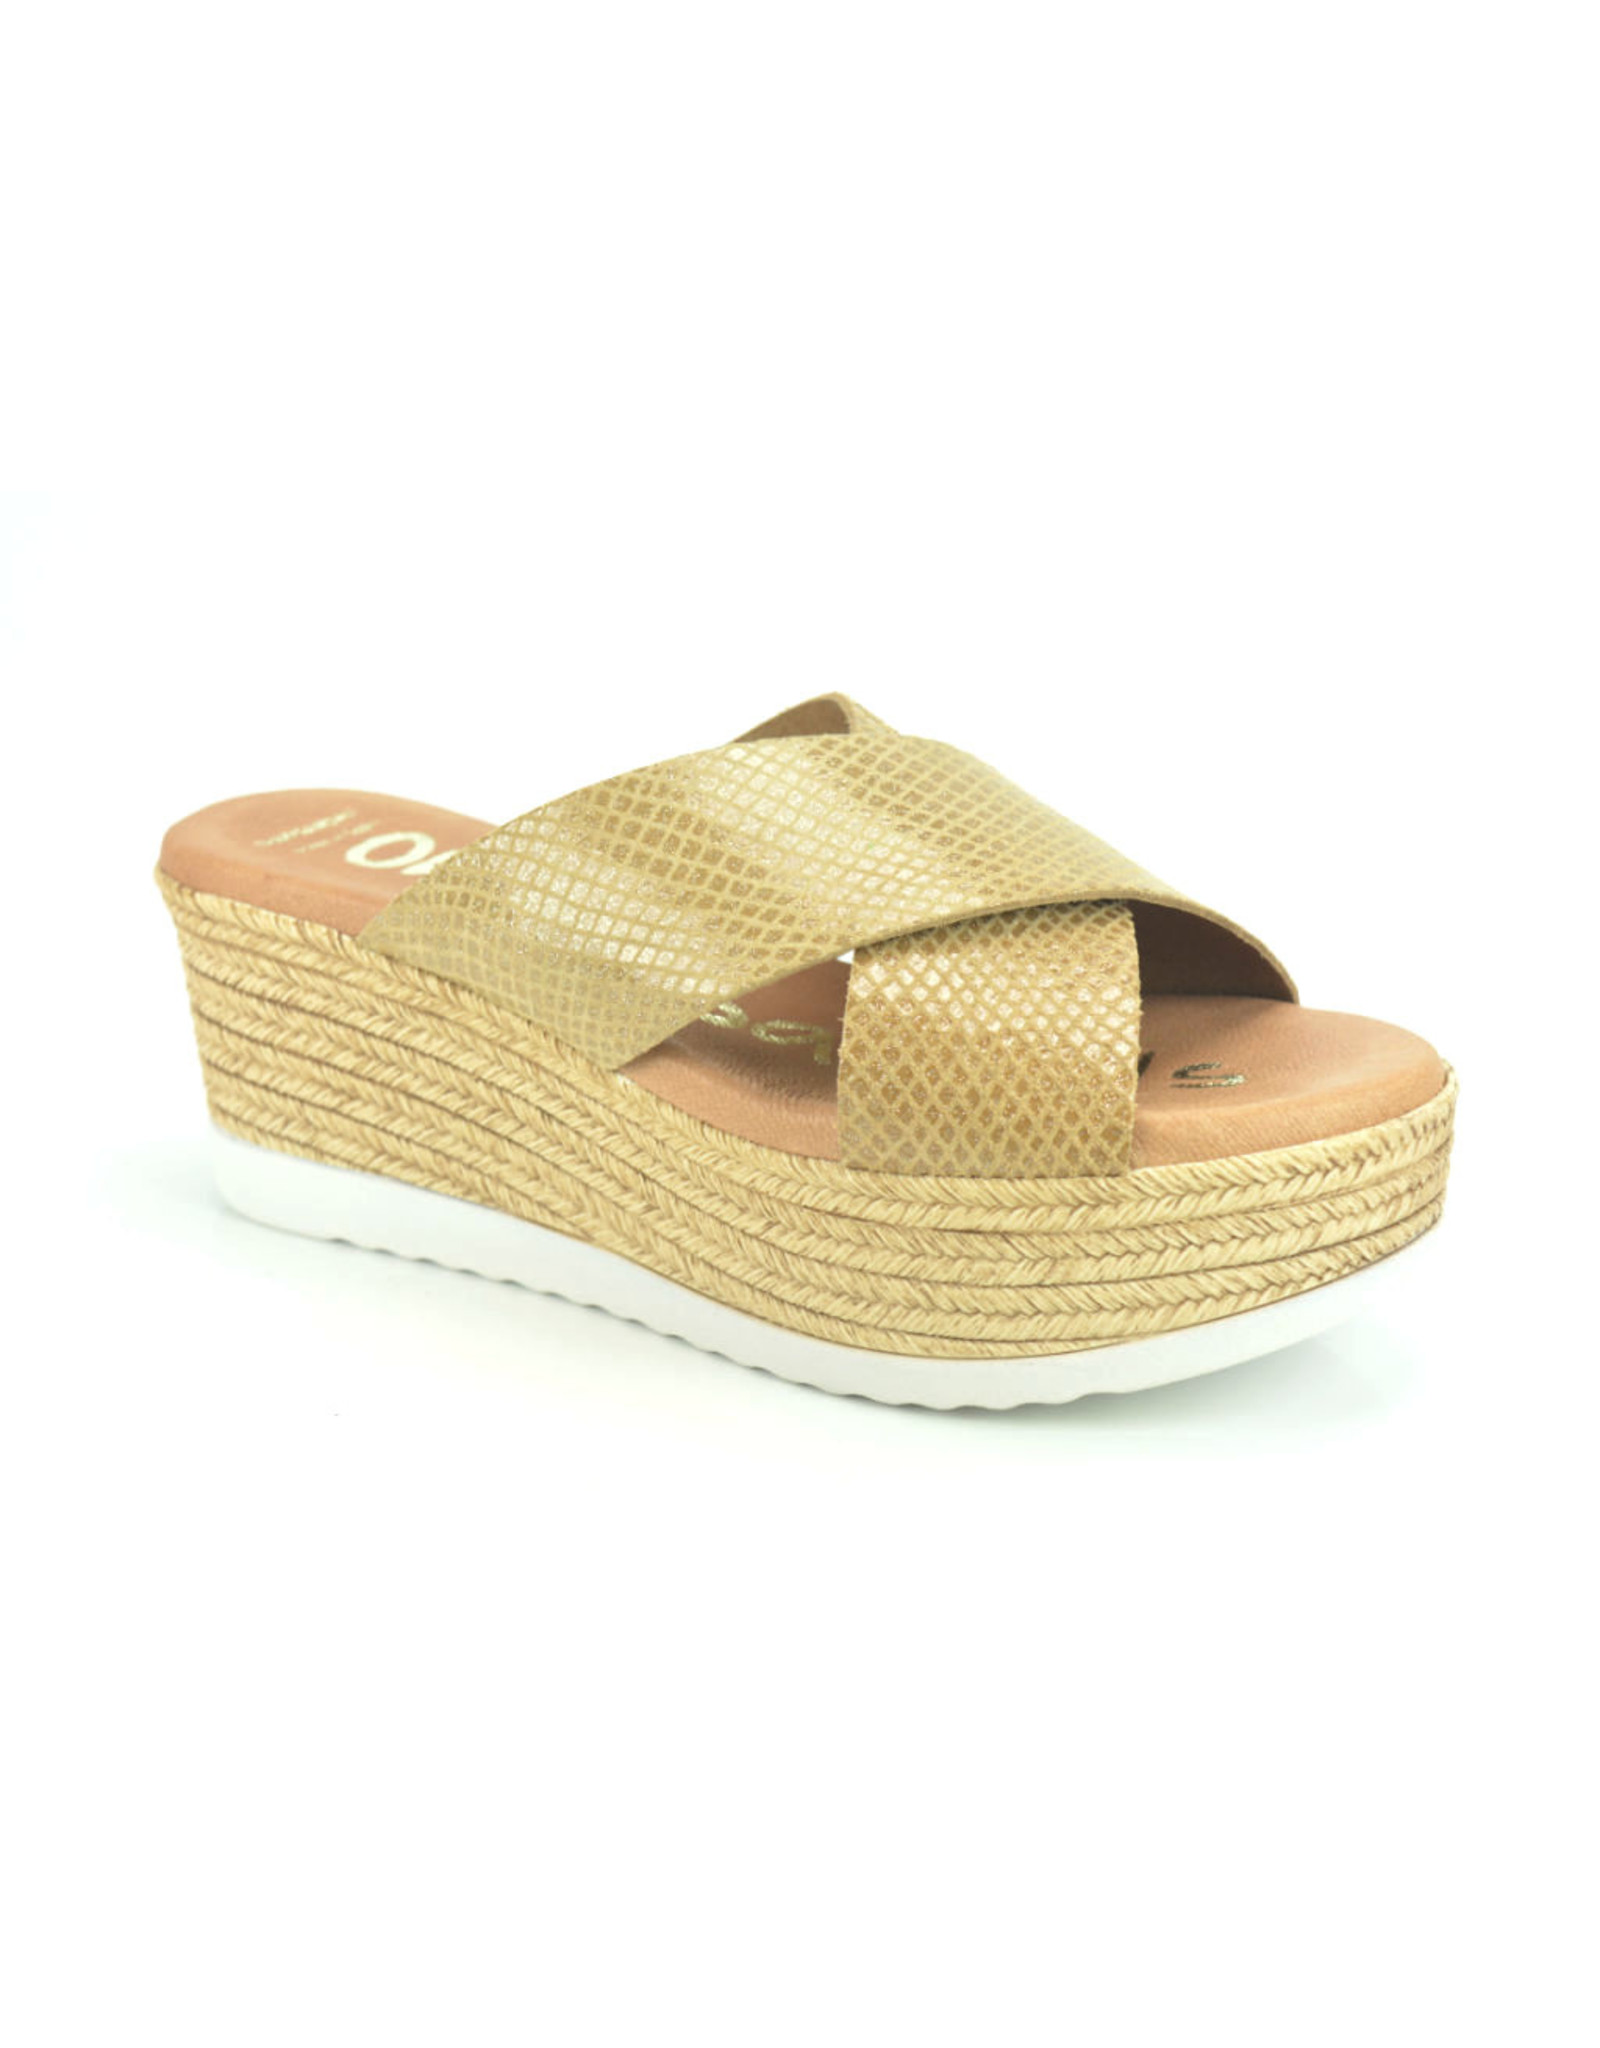 Oh My Sandals 9258 beige